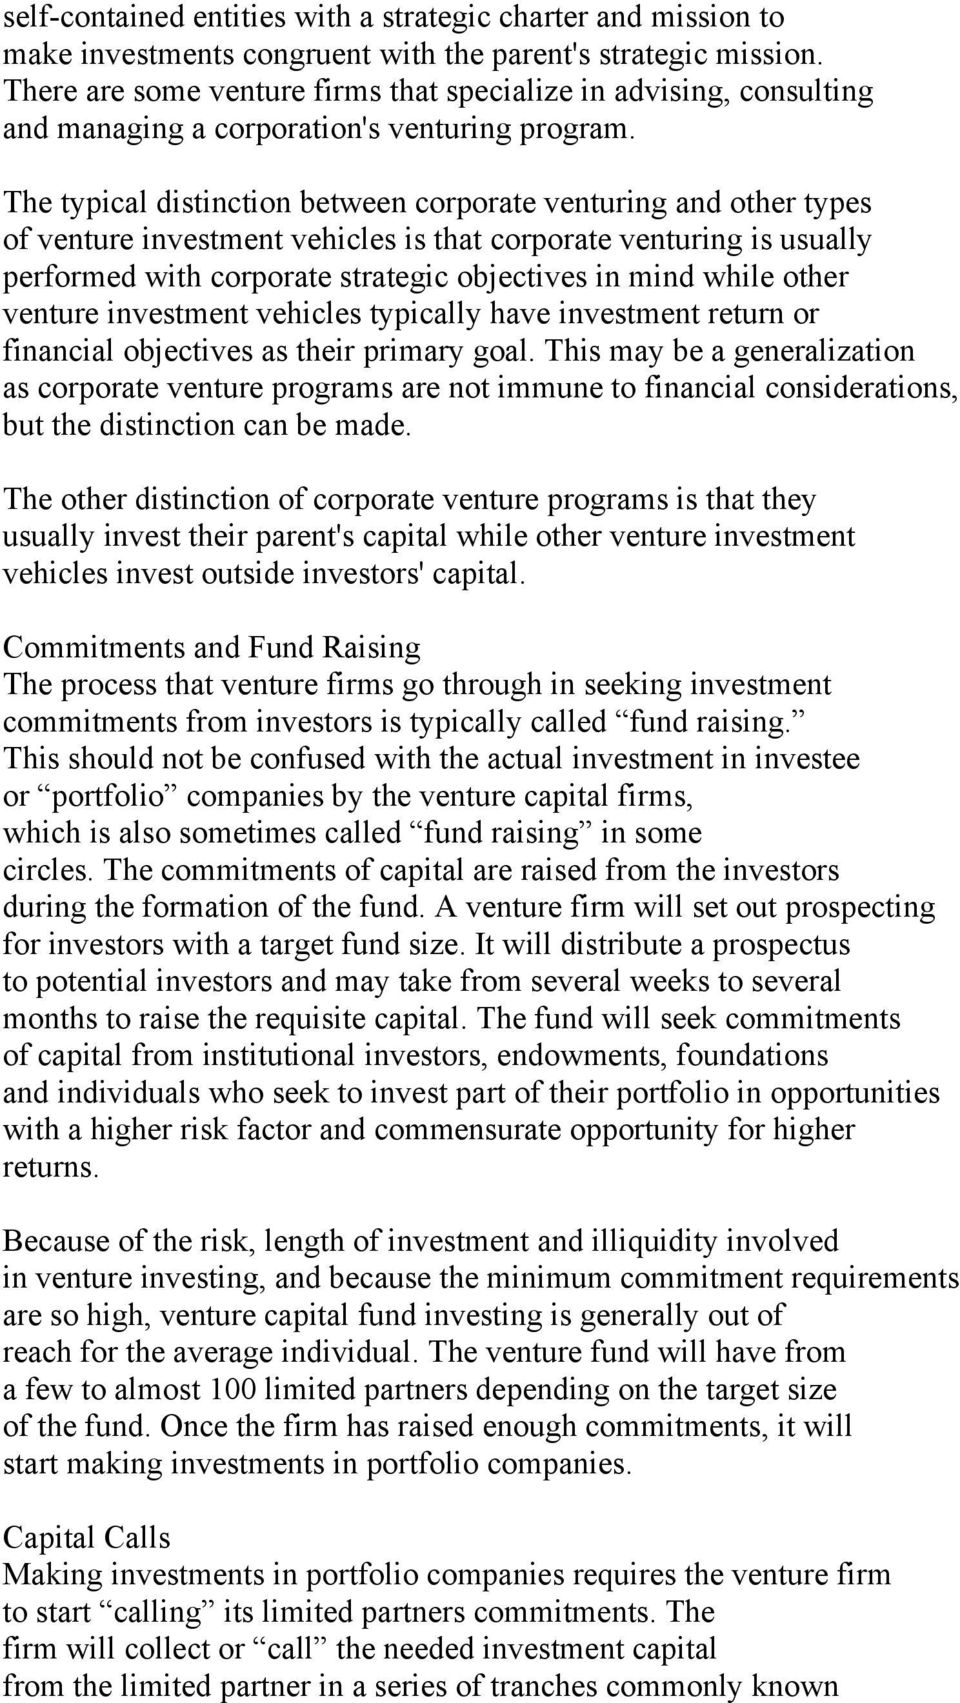 The typical distinction between corporate venturing and other types of venture investment vehicles is that corporate venturing is usually performed with corporate strategic objectives in mind while